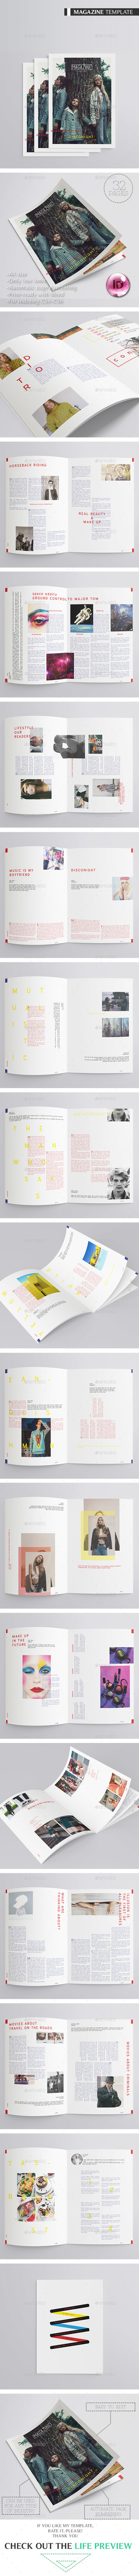 Minimalistic Magazine 32 pages - Magazines Print Templates